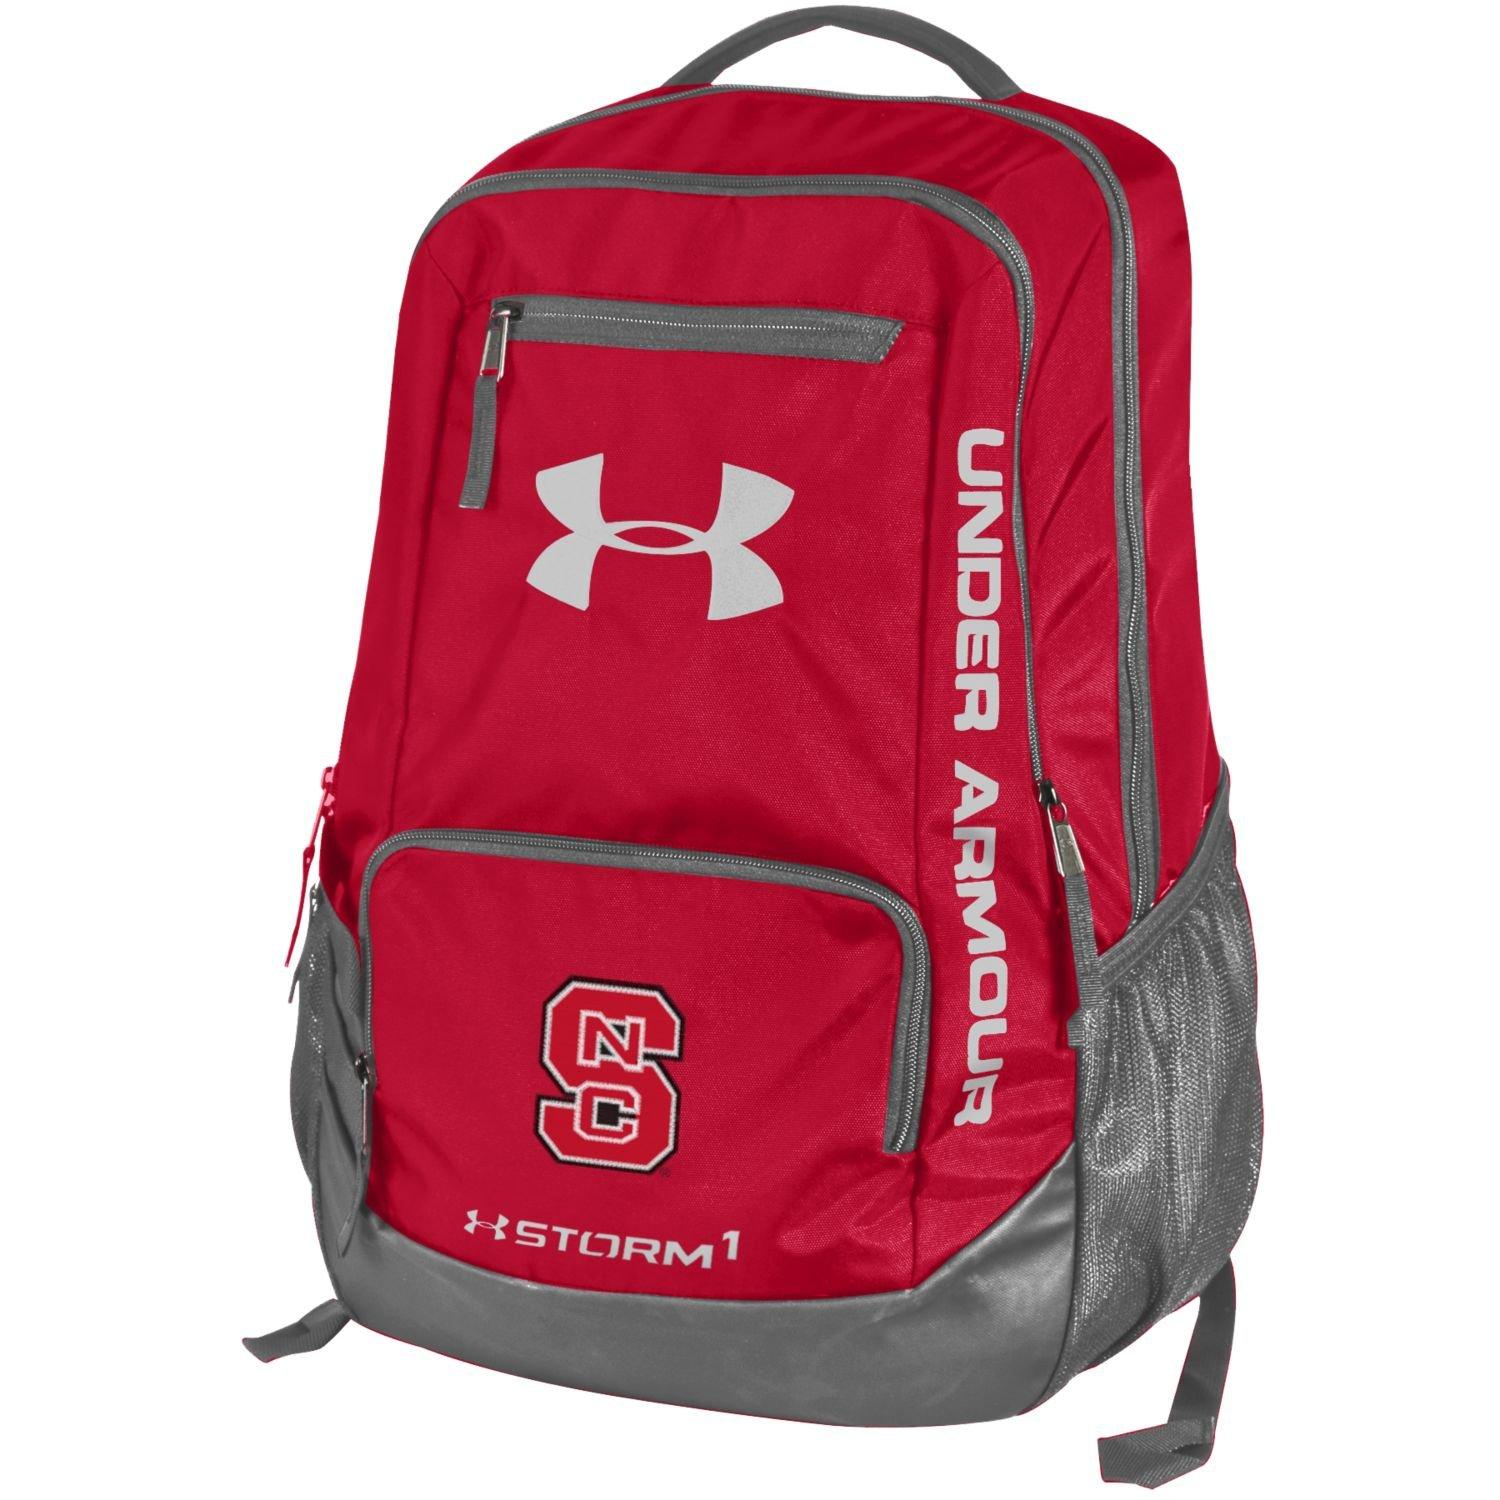 Under Armour Hustle II NC State Backpack